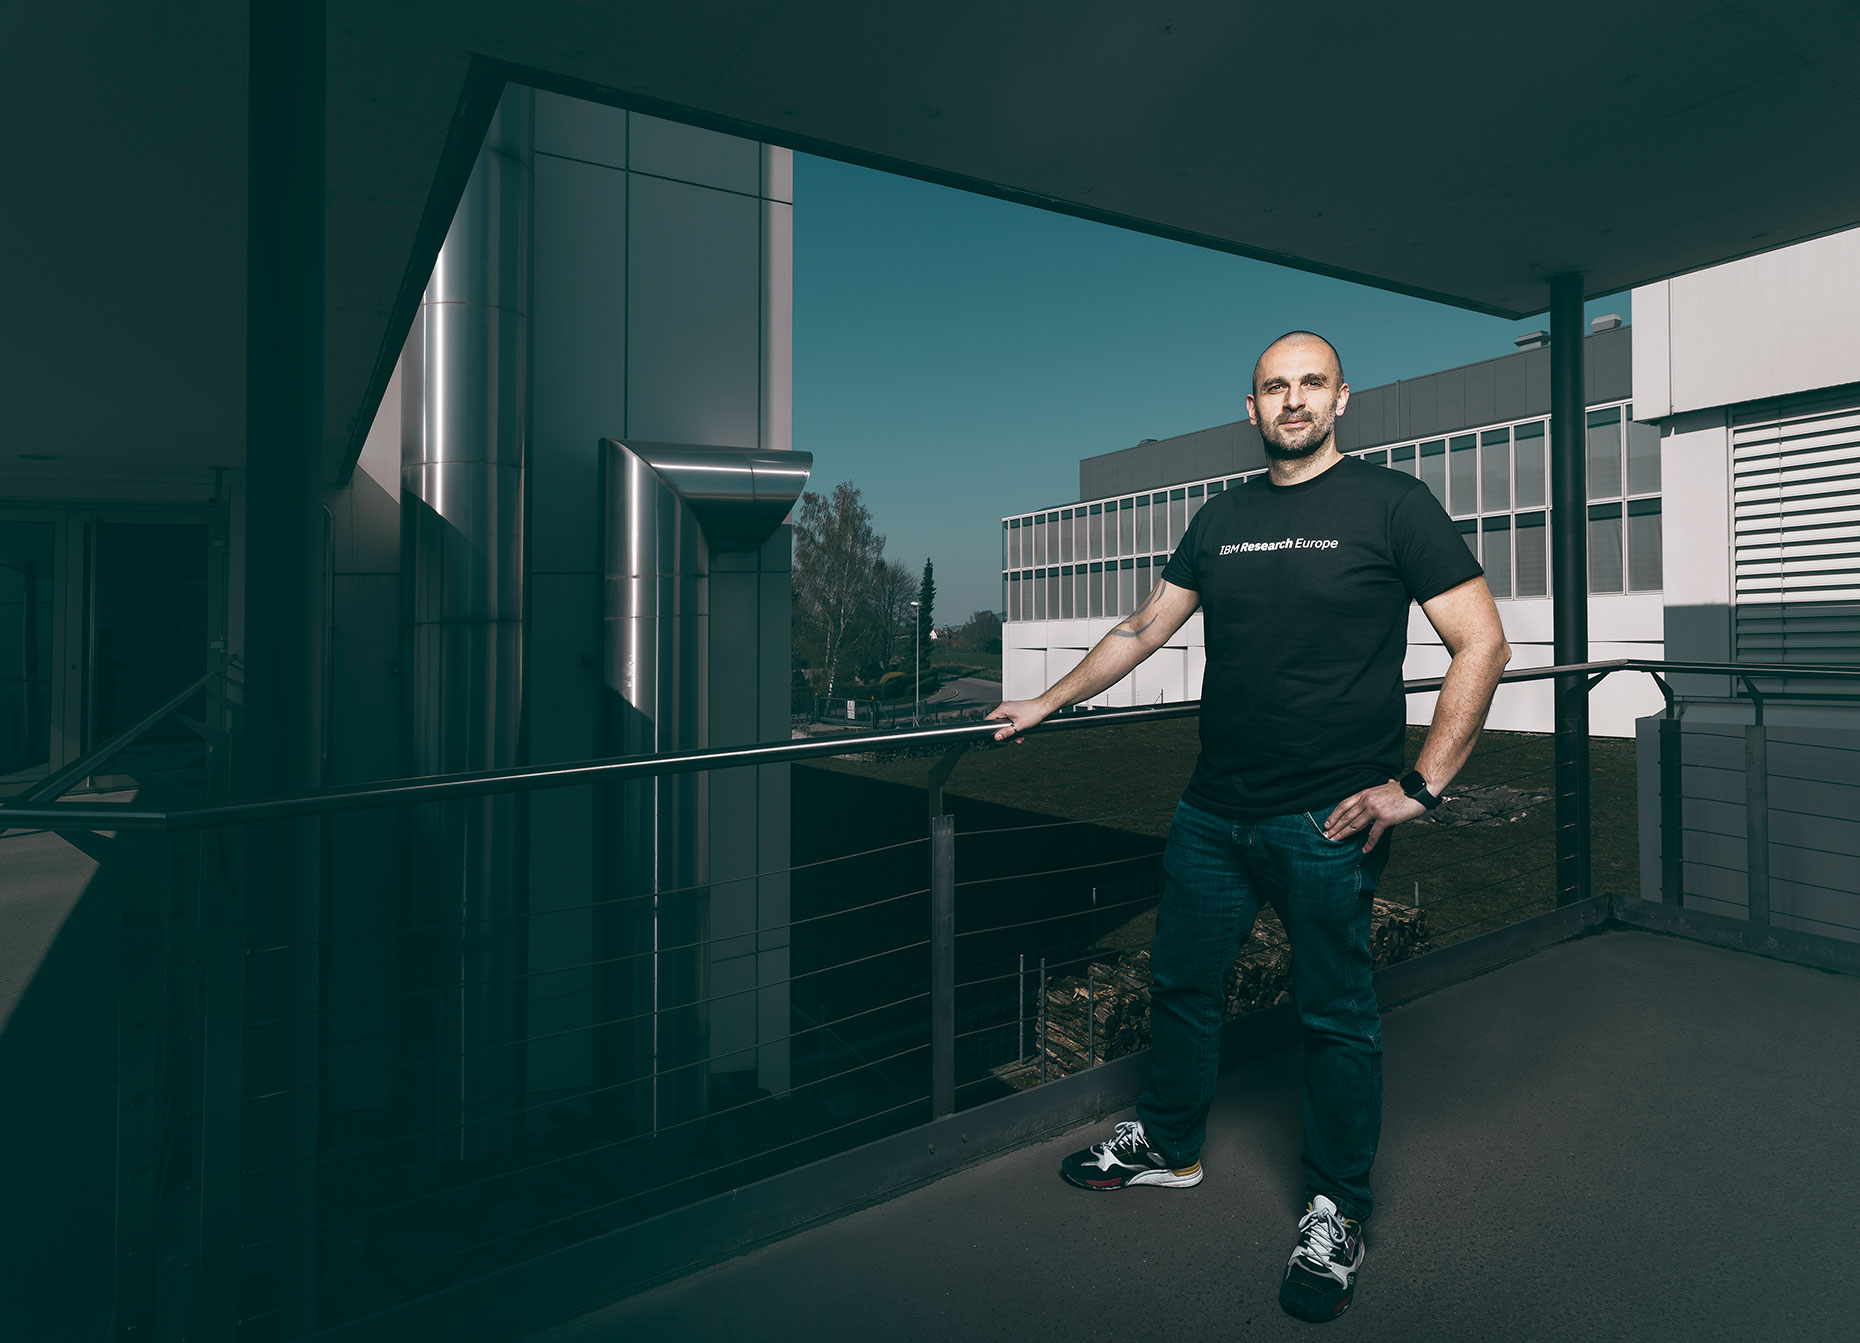 Teodoro Laino, Technical leader for Molecular Simulation, Principal RSM poses  at IBM Research Laboratory in Rueschlikon, for Bilanz